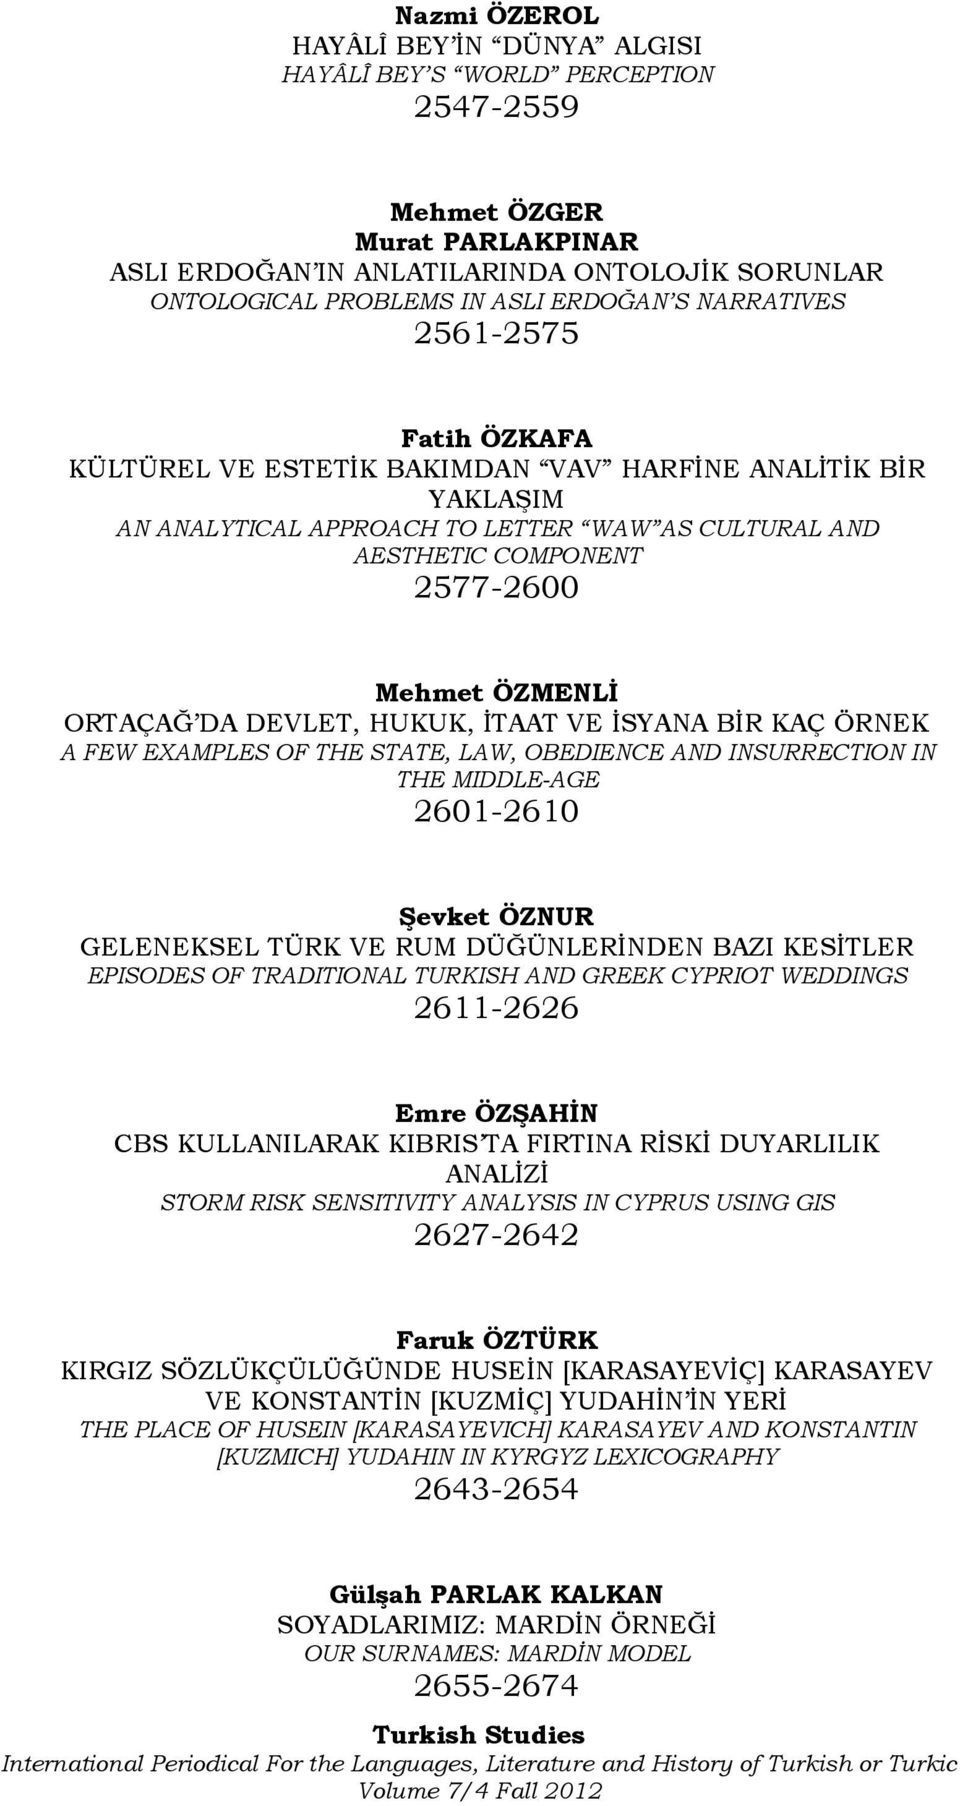 ORTAÇAĞ DA DEVLET, HUKUK, İTAAT VE İSYANA BİR KAÇ ÖRNEK A FEW EXAMPLES OF THE STATE, LAW, OBEDIENCE AND INSURRECTION IN THE MIDDLE-AGE 2601-2610 ġevket ÖZNUR GELENEKSEL TÜRK VE RUM DÜĞÜNLERİNDEN BAZI